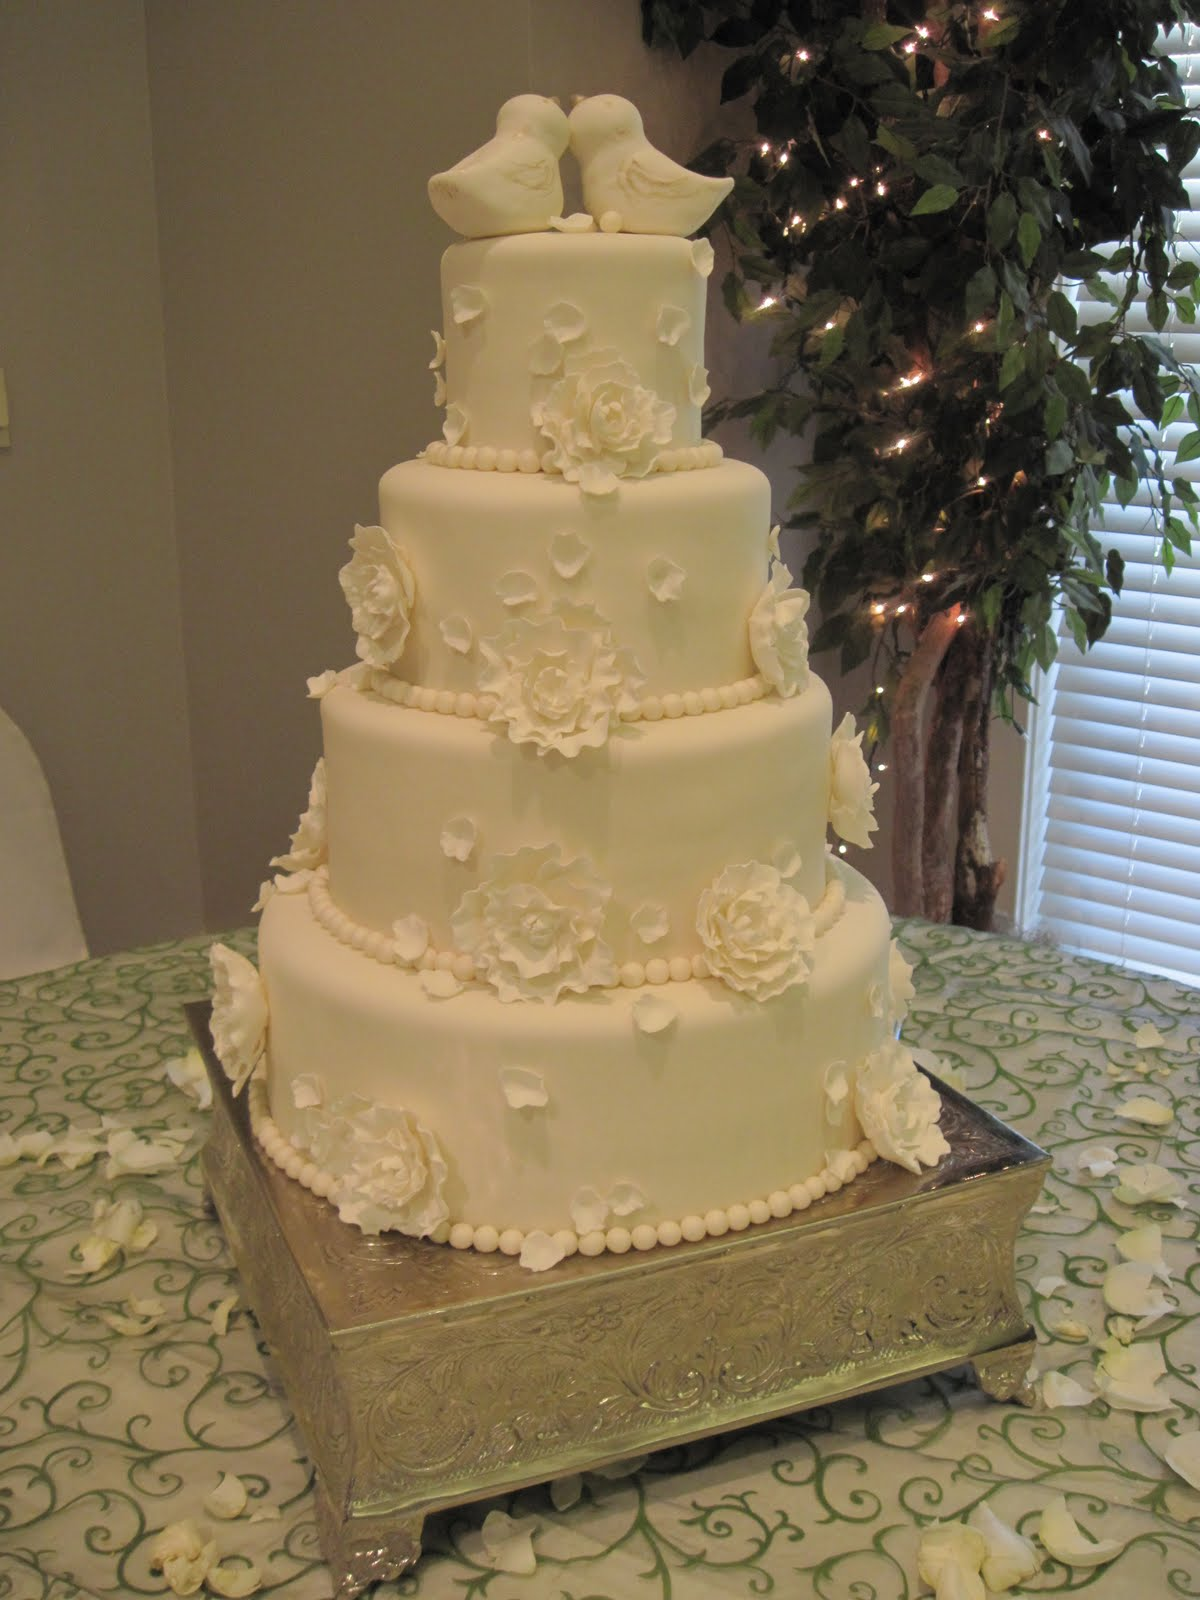 Heather s Cakes and Confections Jordan